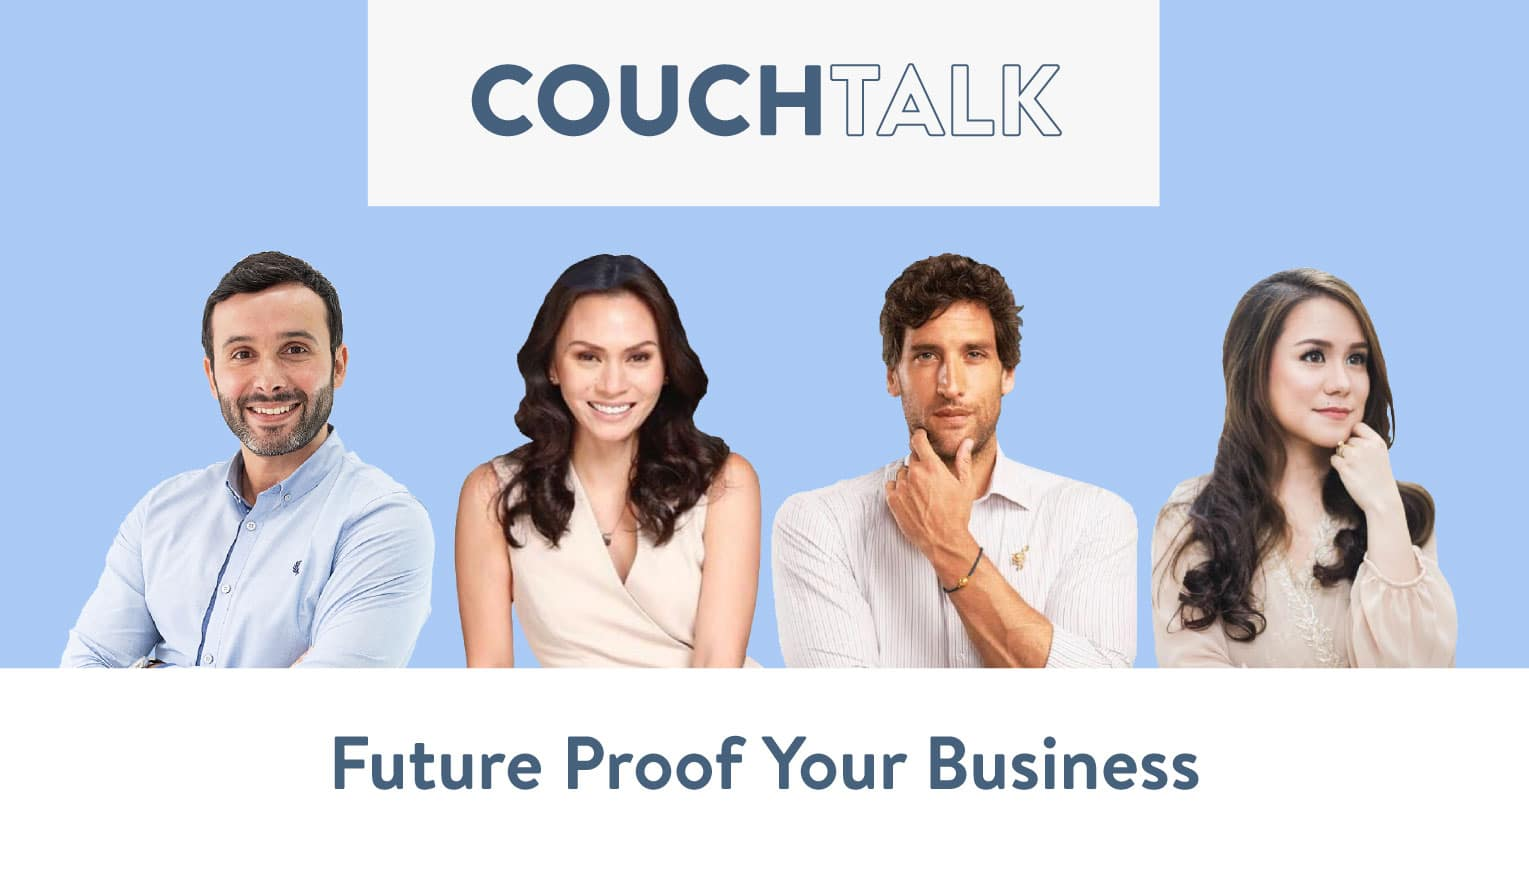 CouchTalk Webinar: Future Proof Your Business